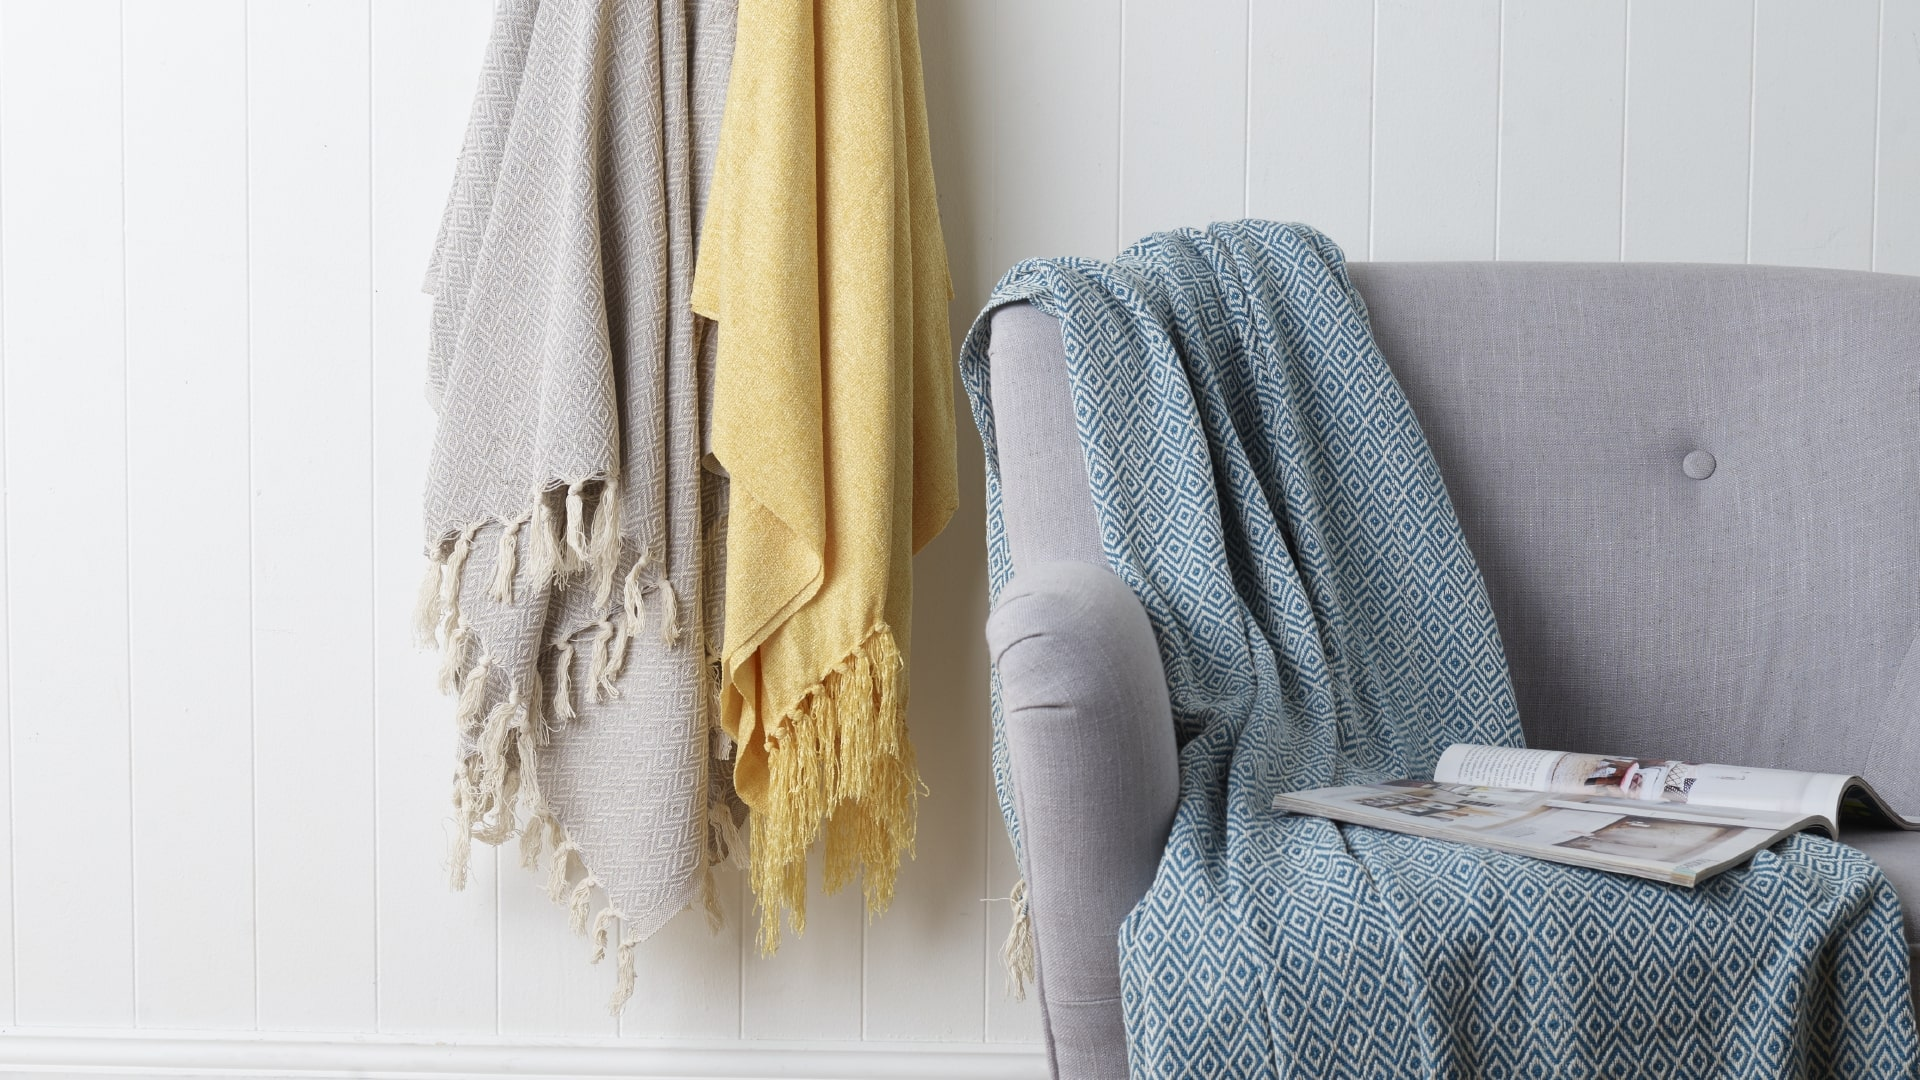 Decorate Using Throws & Blankets